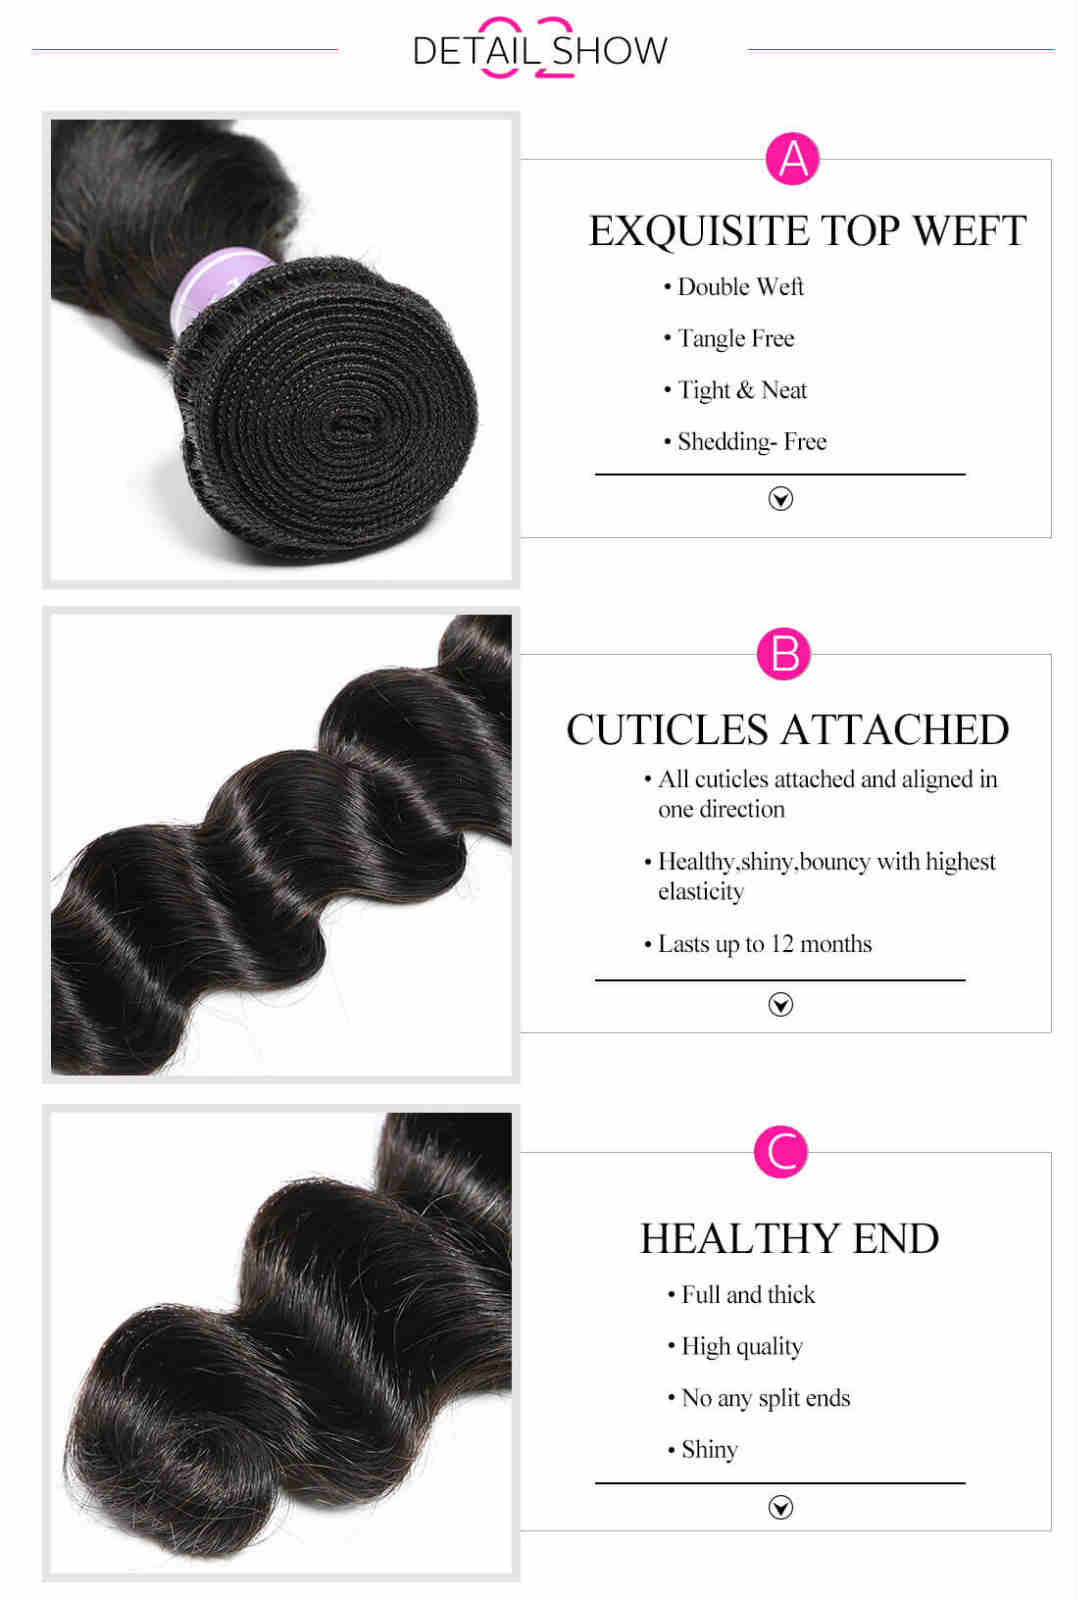 Details of loose deep wave weave